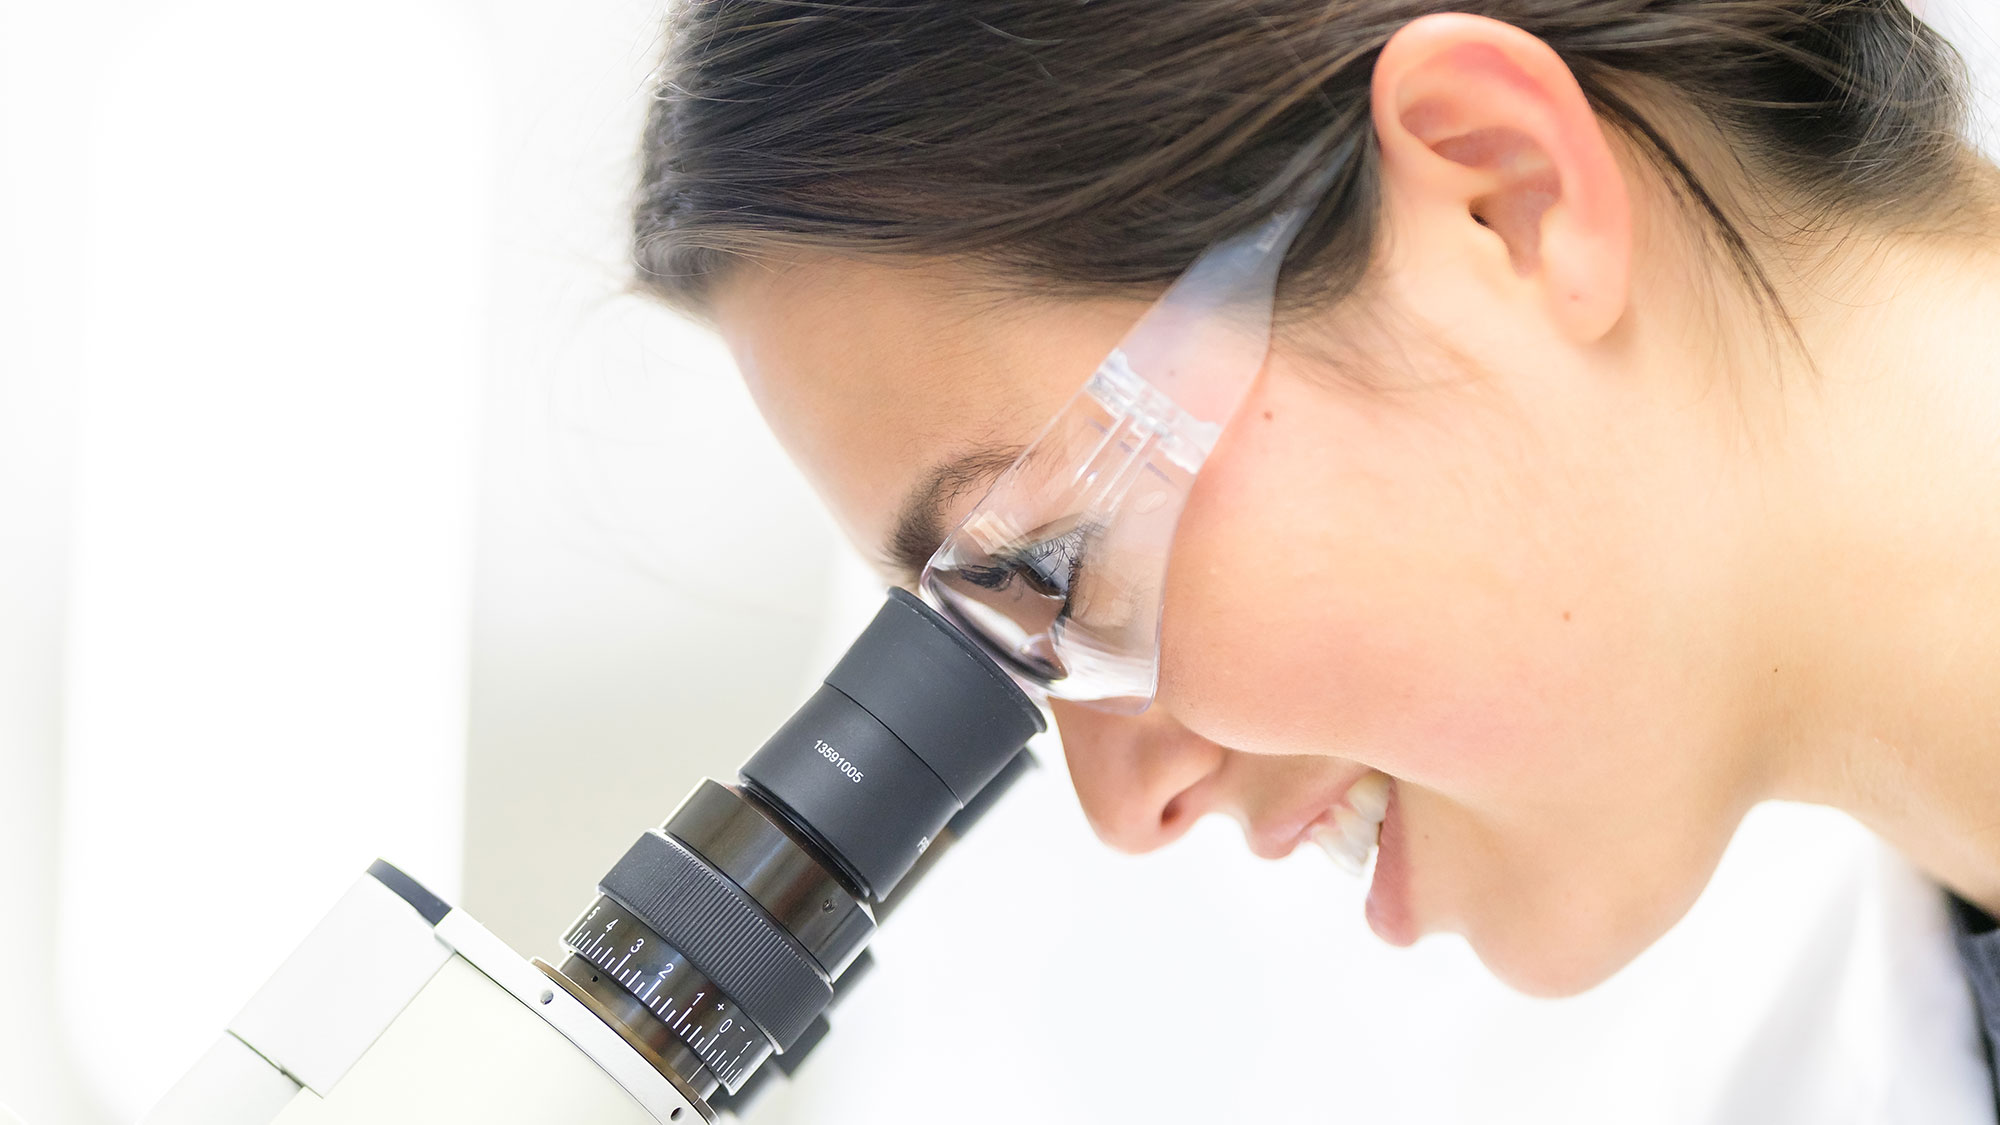 A woman scientist looks through a microscope